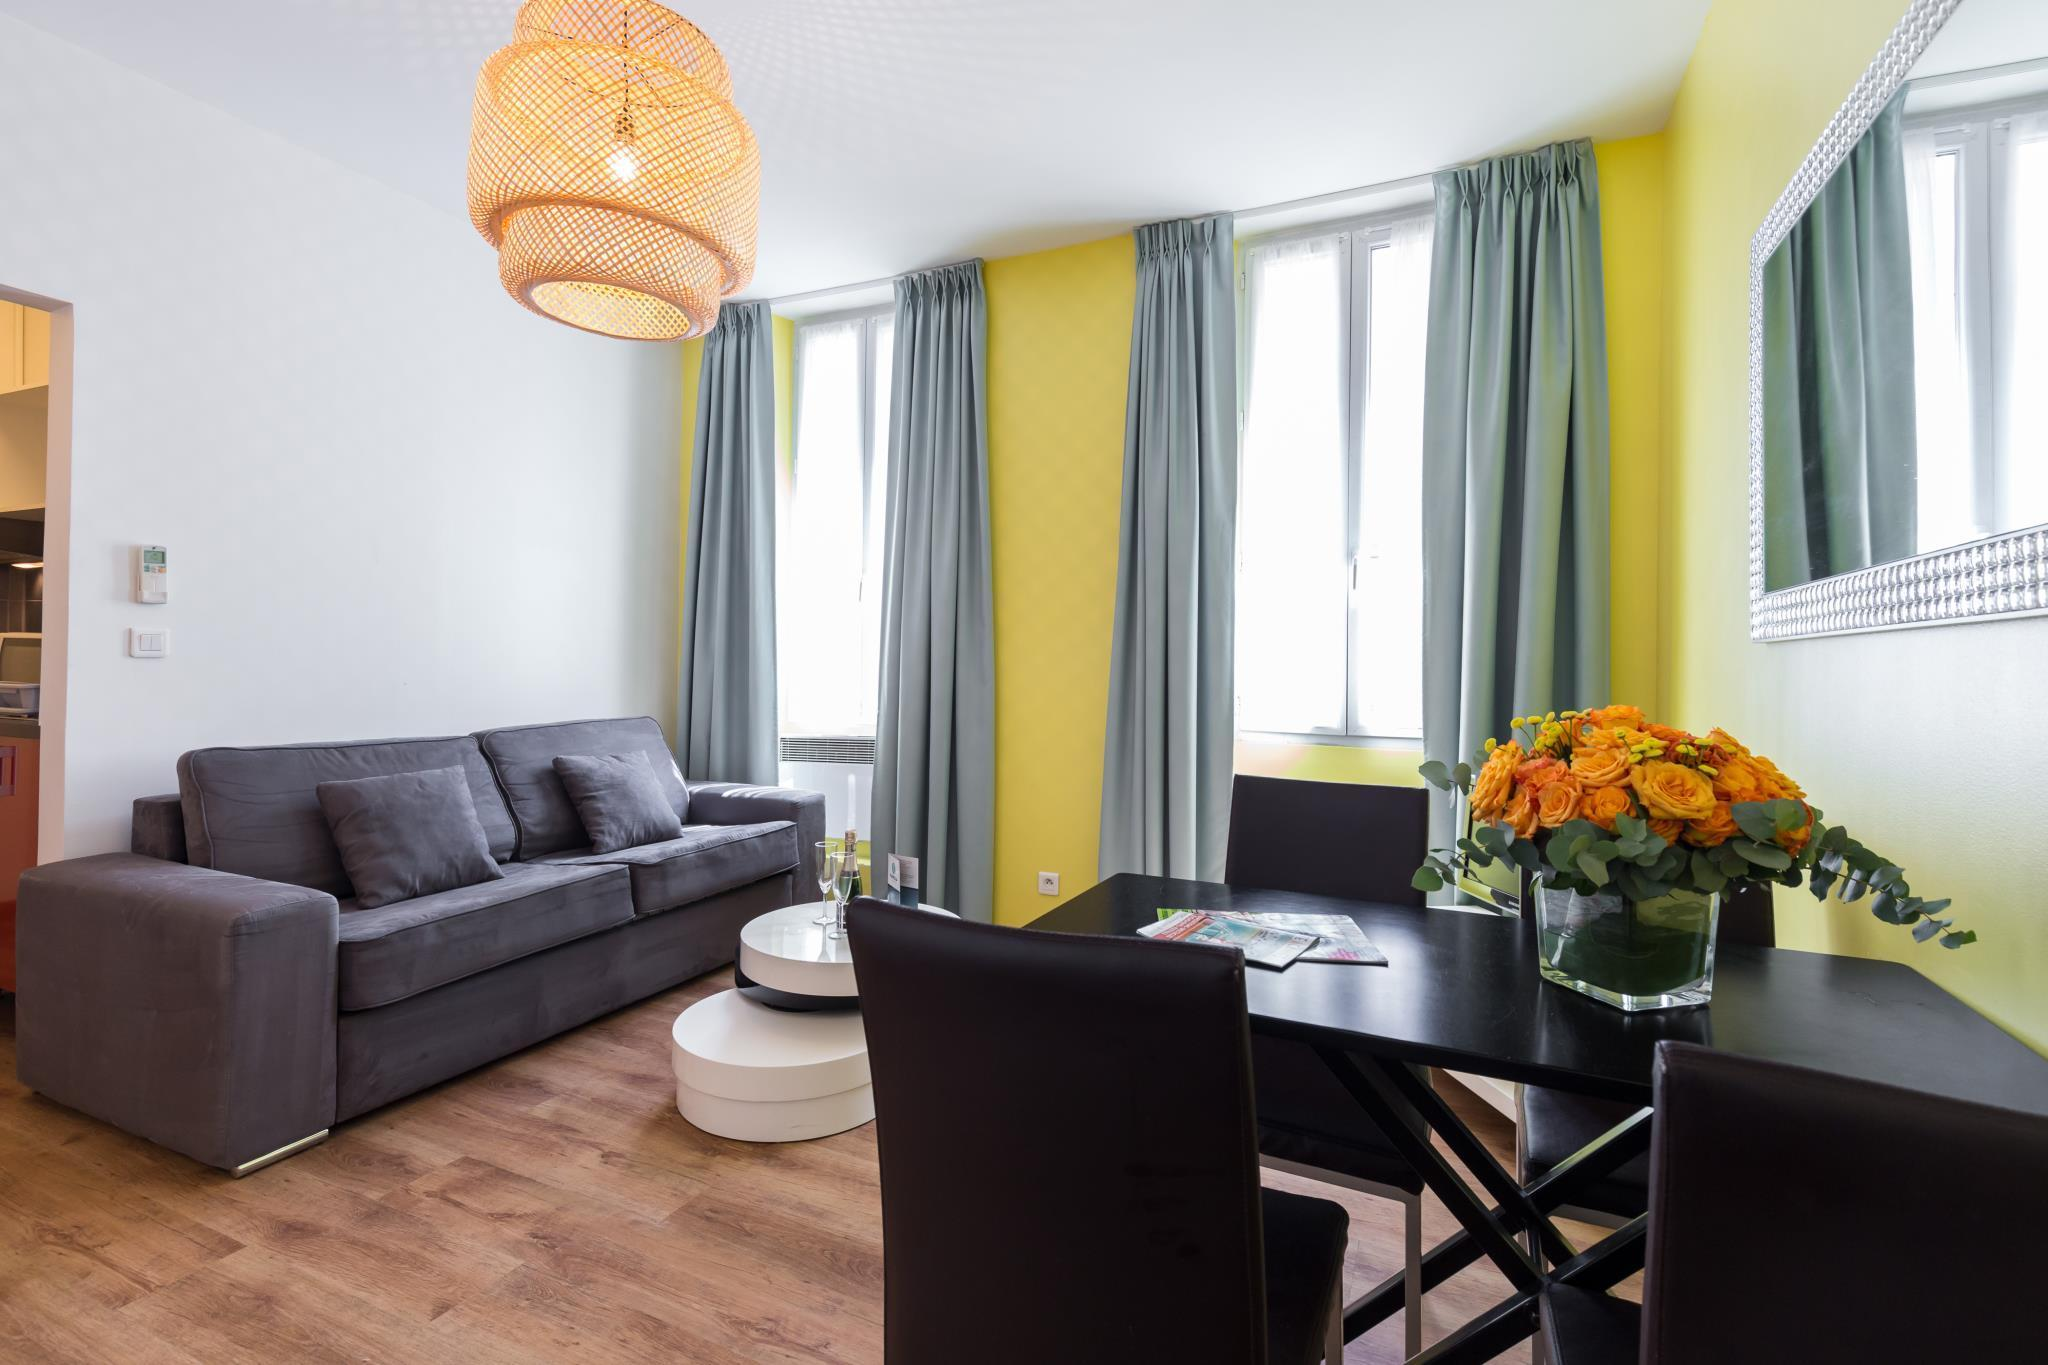 florella clemenceau residence in cannes room deals photos reviews rh agoda com